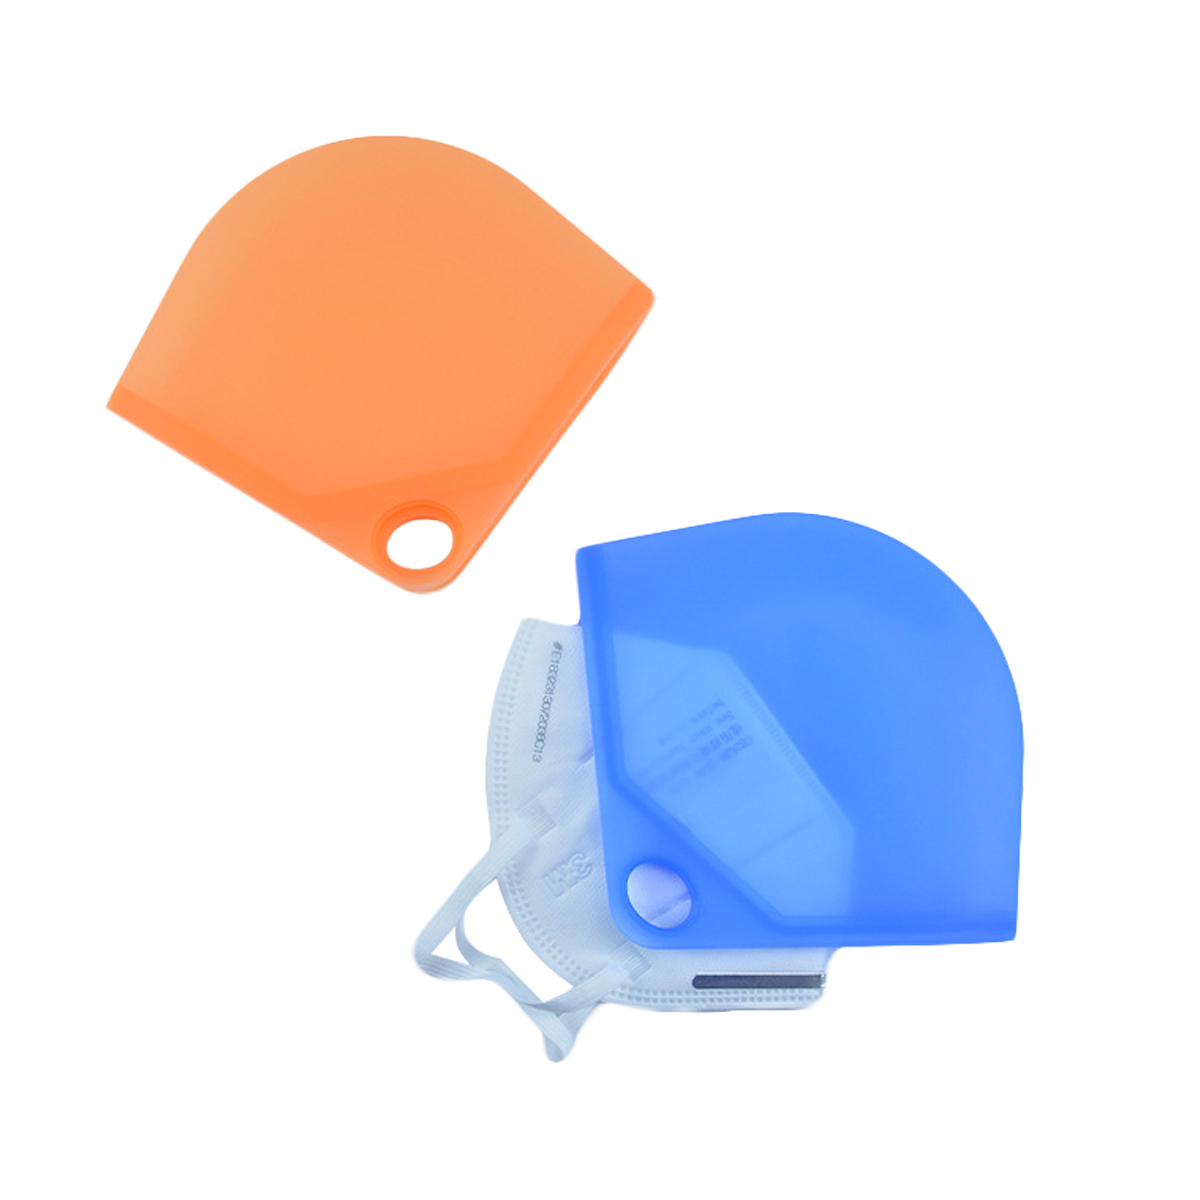 1pcs Portable Food-grade Silicone N95 Mask Storage Clip Case Face Masks Container Flexibility Storage Organizer(China)